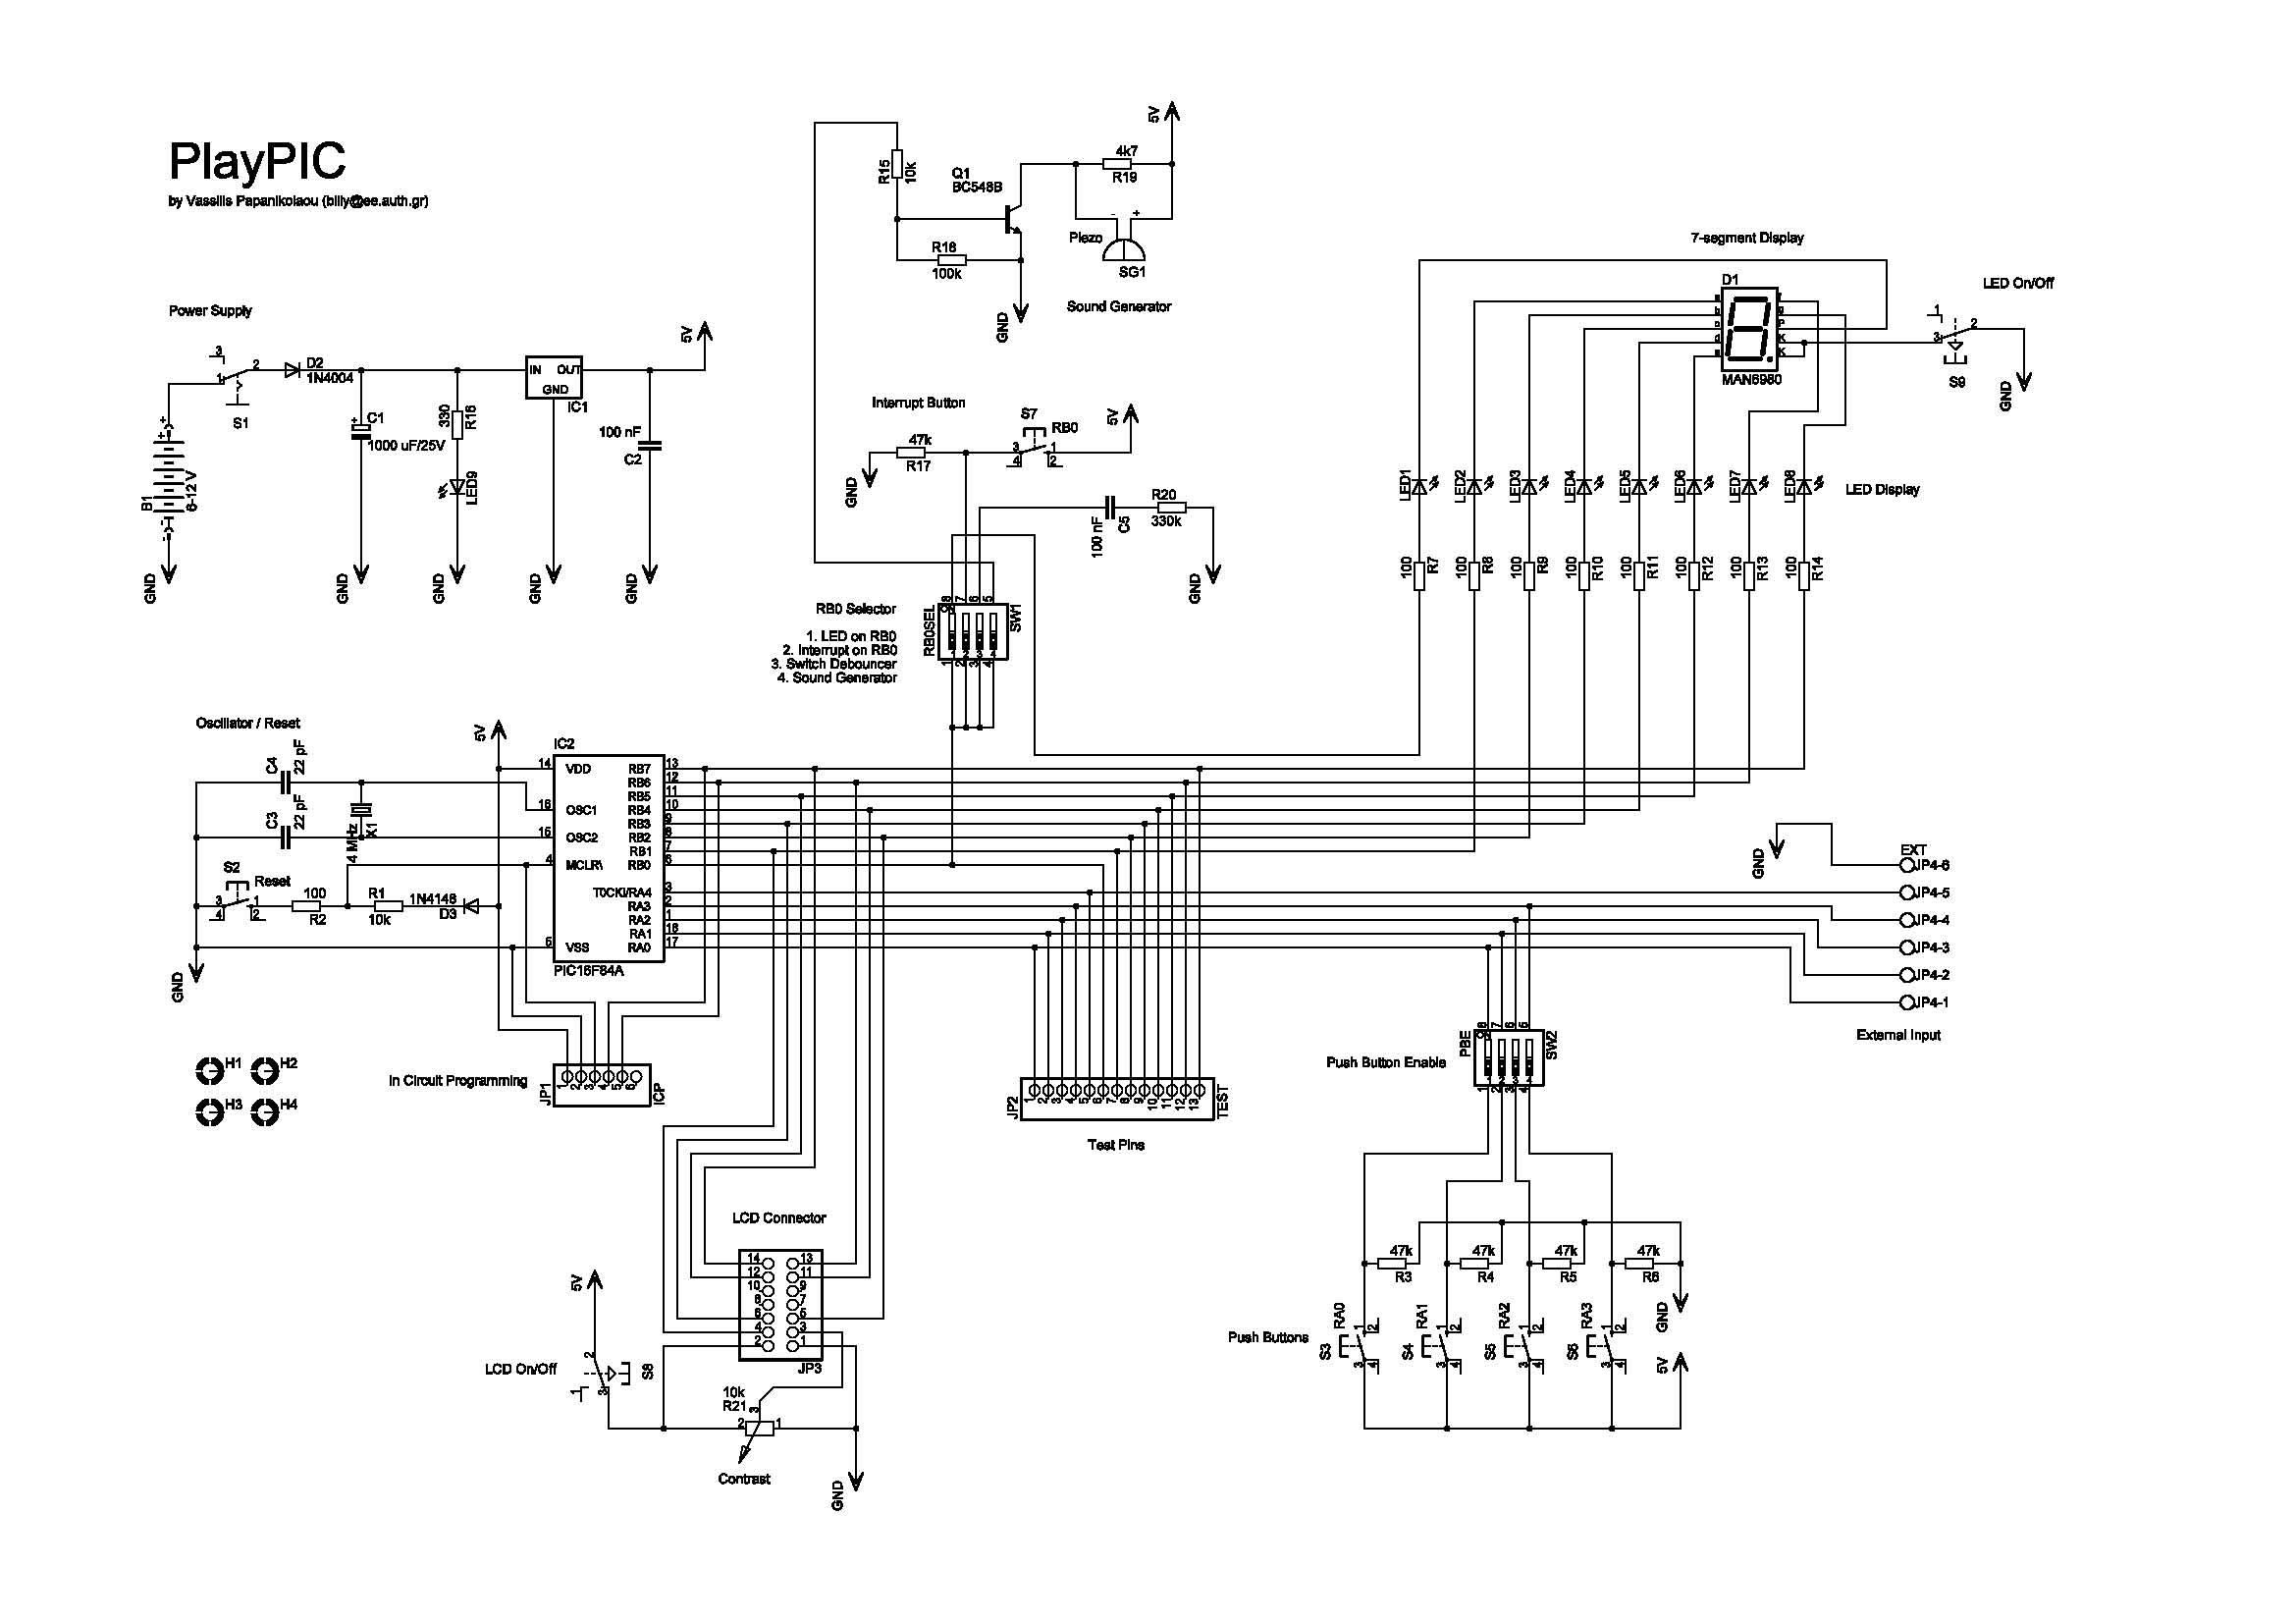 Yamaha Lagenda Wiring Diagram | Wiring Schematic Diagram ... on